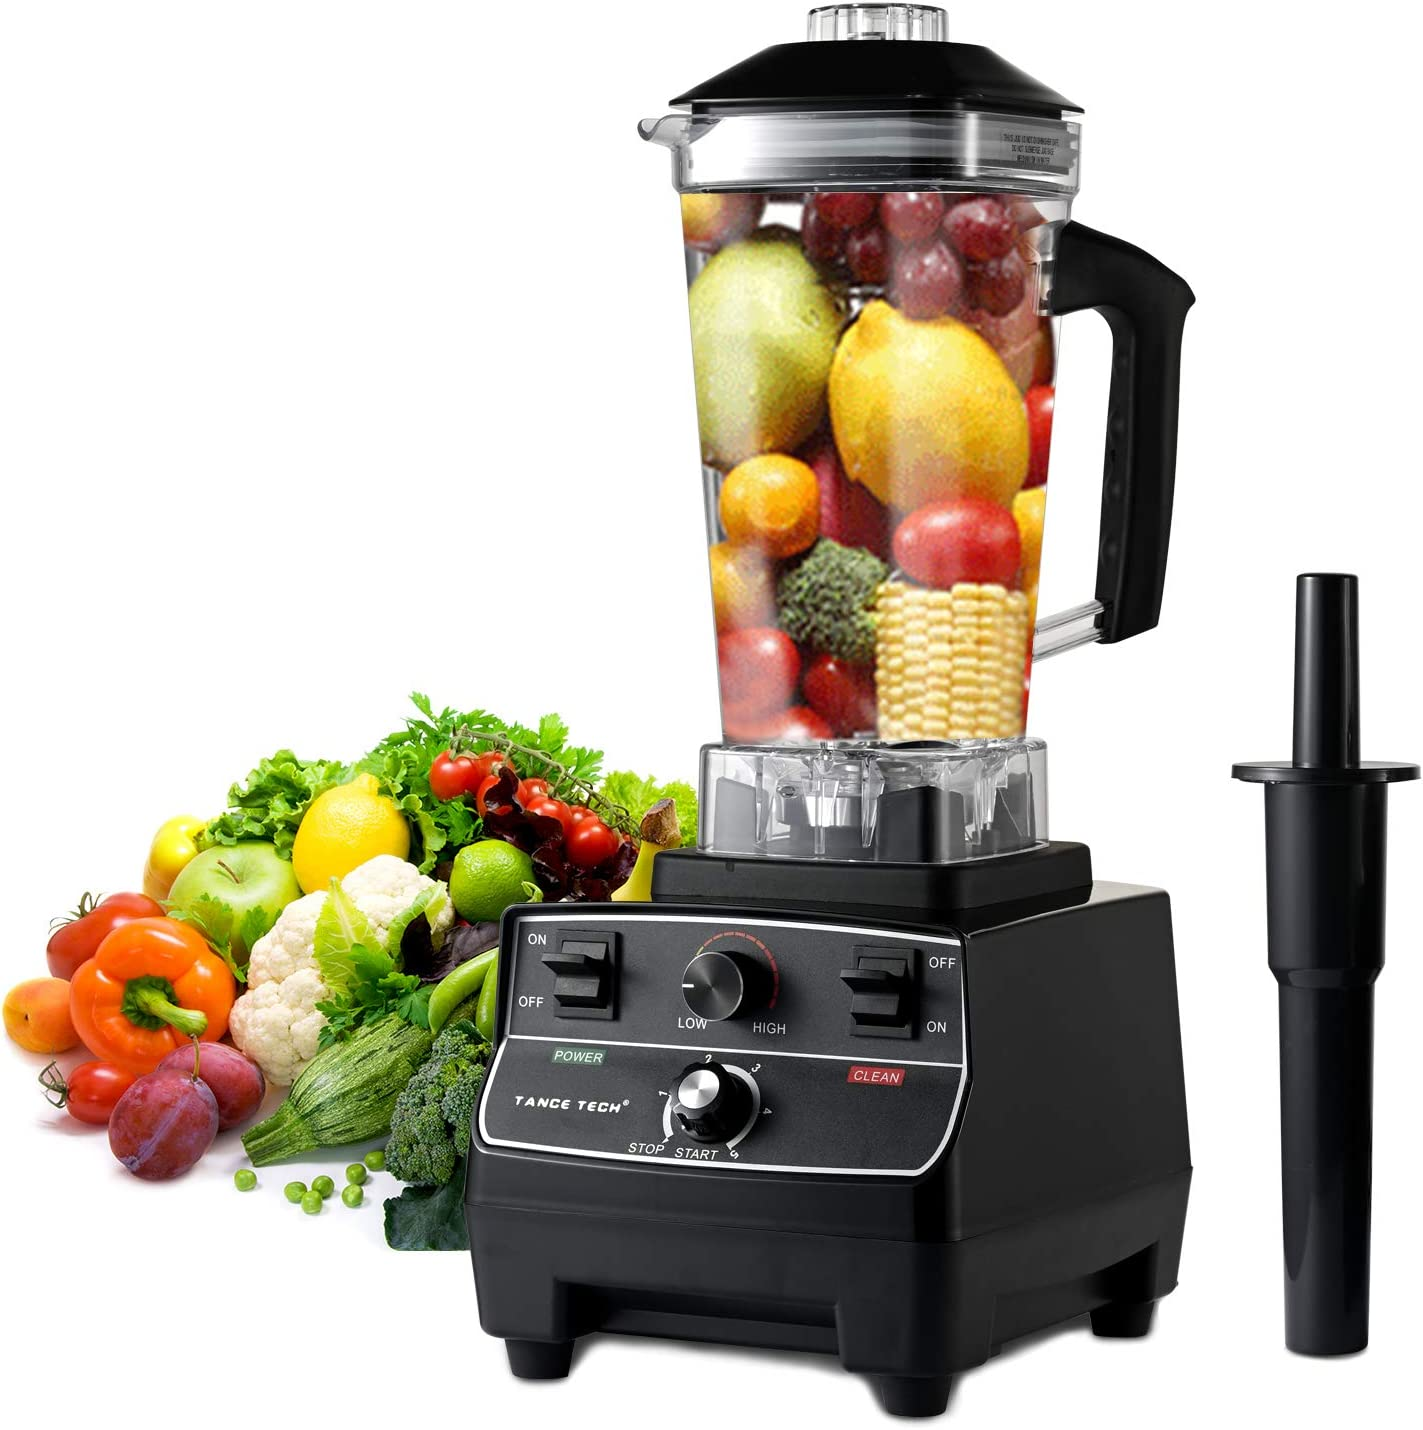 Tance Tech Professional Countertop Blender for Kitchen - 2200-Watt Home and Commercial Blender - High Speed Multifunctional Blender with Adjustable Speeds Control,Built-in Timer - 68 Oz Cups for Shakes and Smoothies,Frozen Drinks, Crusing Ice, Frozen Dessert,Fish or Hot Soups